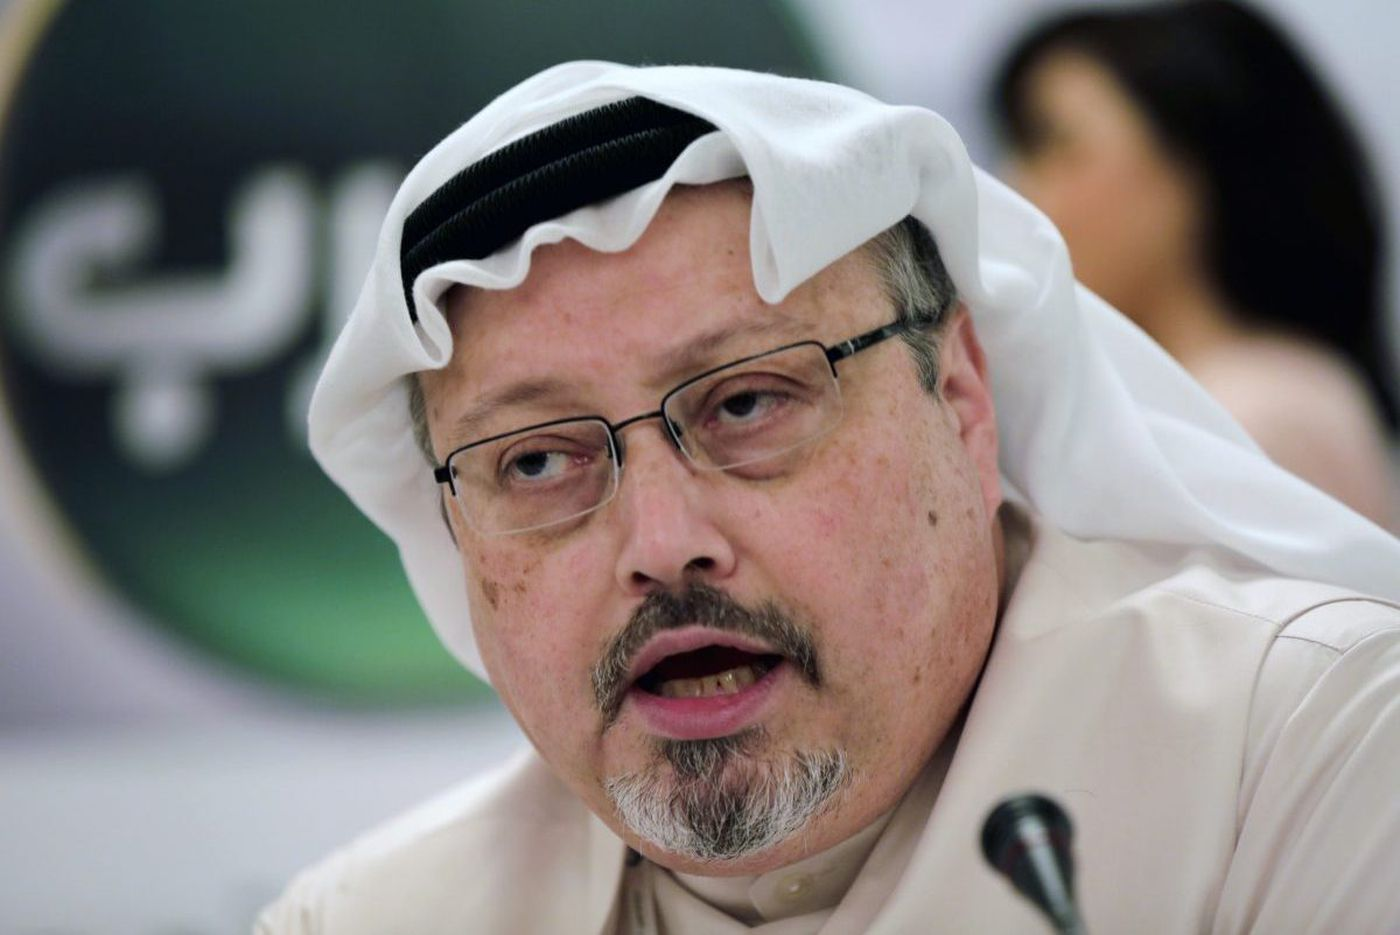 Saudi Arabia fires five top officials, arrests 18 after admitting Khashoggi was killed in a fight at consulate